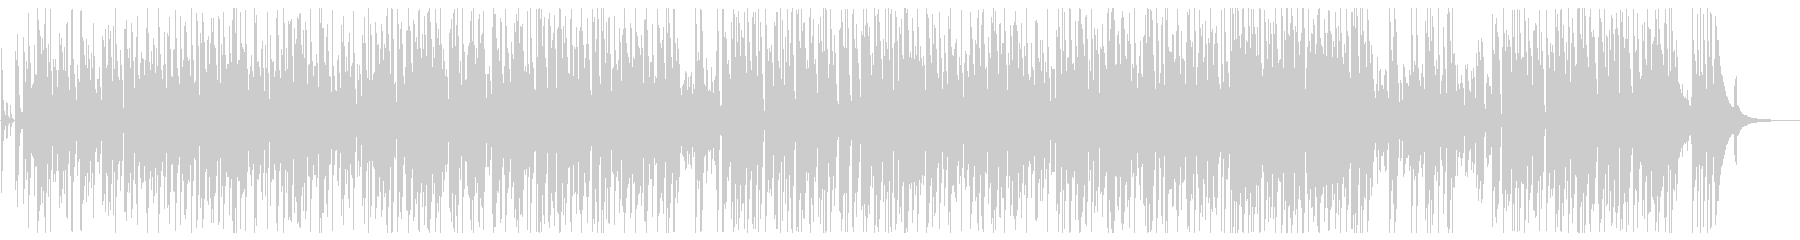 Pops that comically express conflict's unreproduced waveform